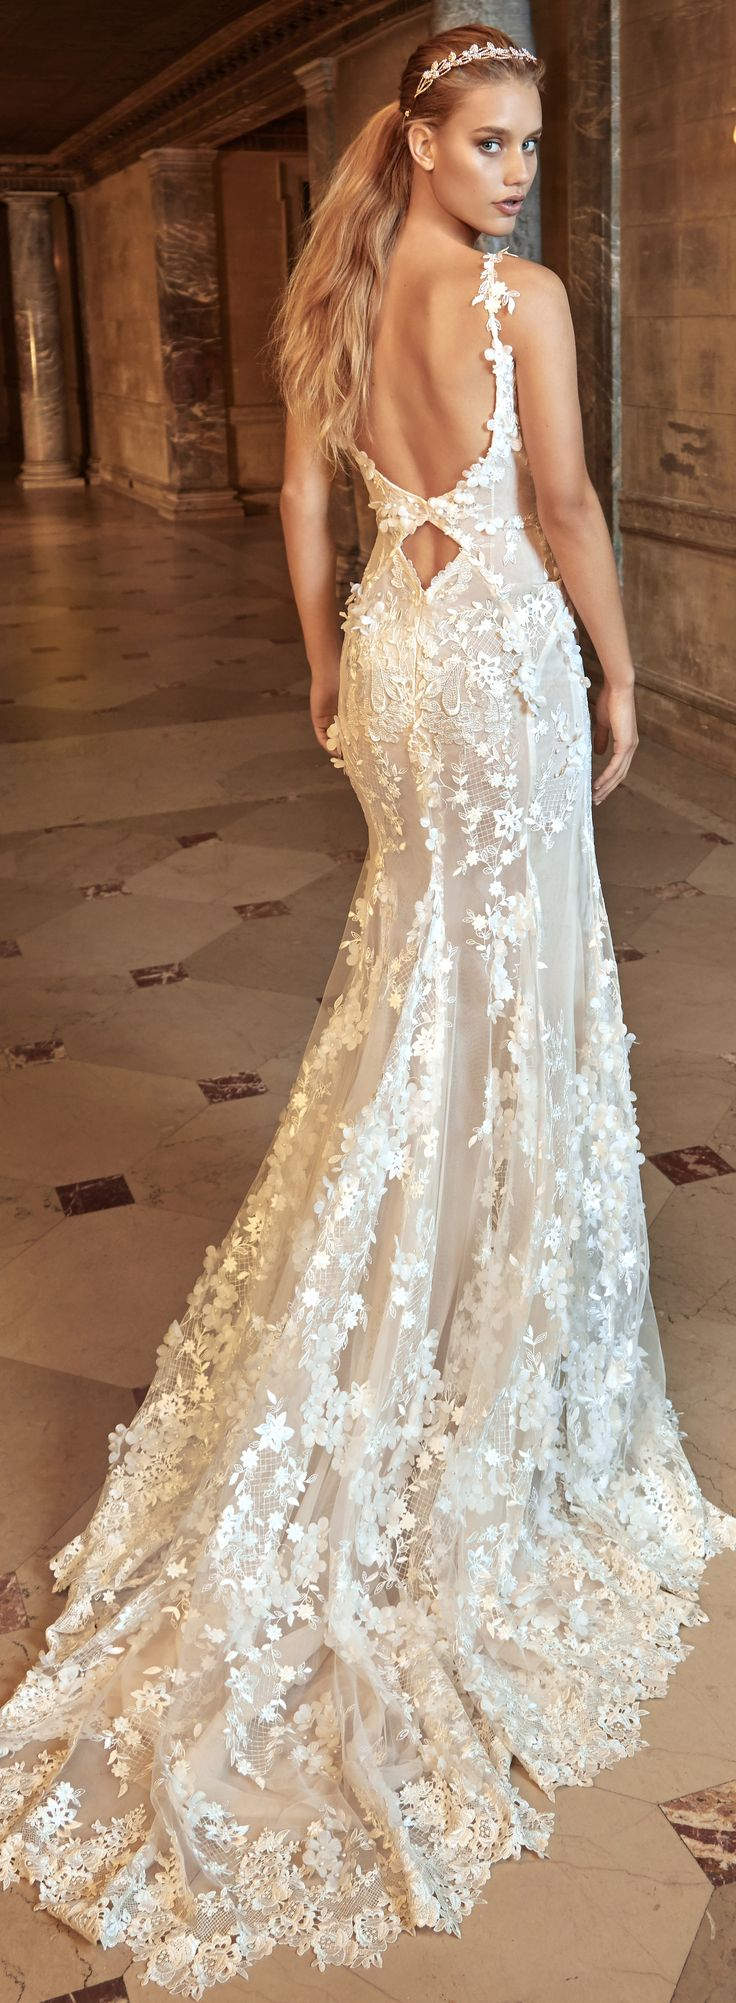 Best 25 diamond wedding dress ideas on pinterest for Wedding dresses with pearls and diamonds